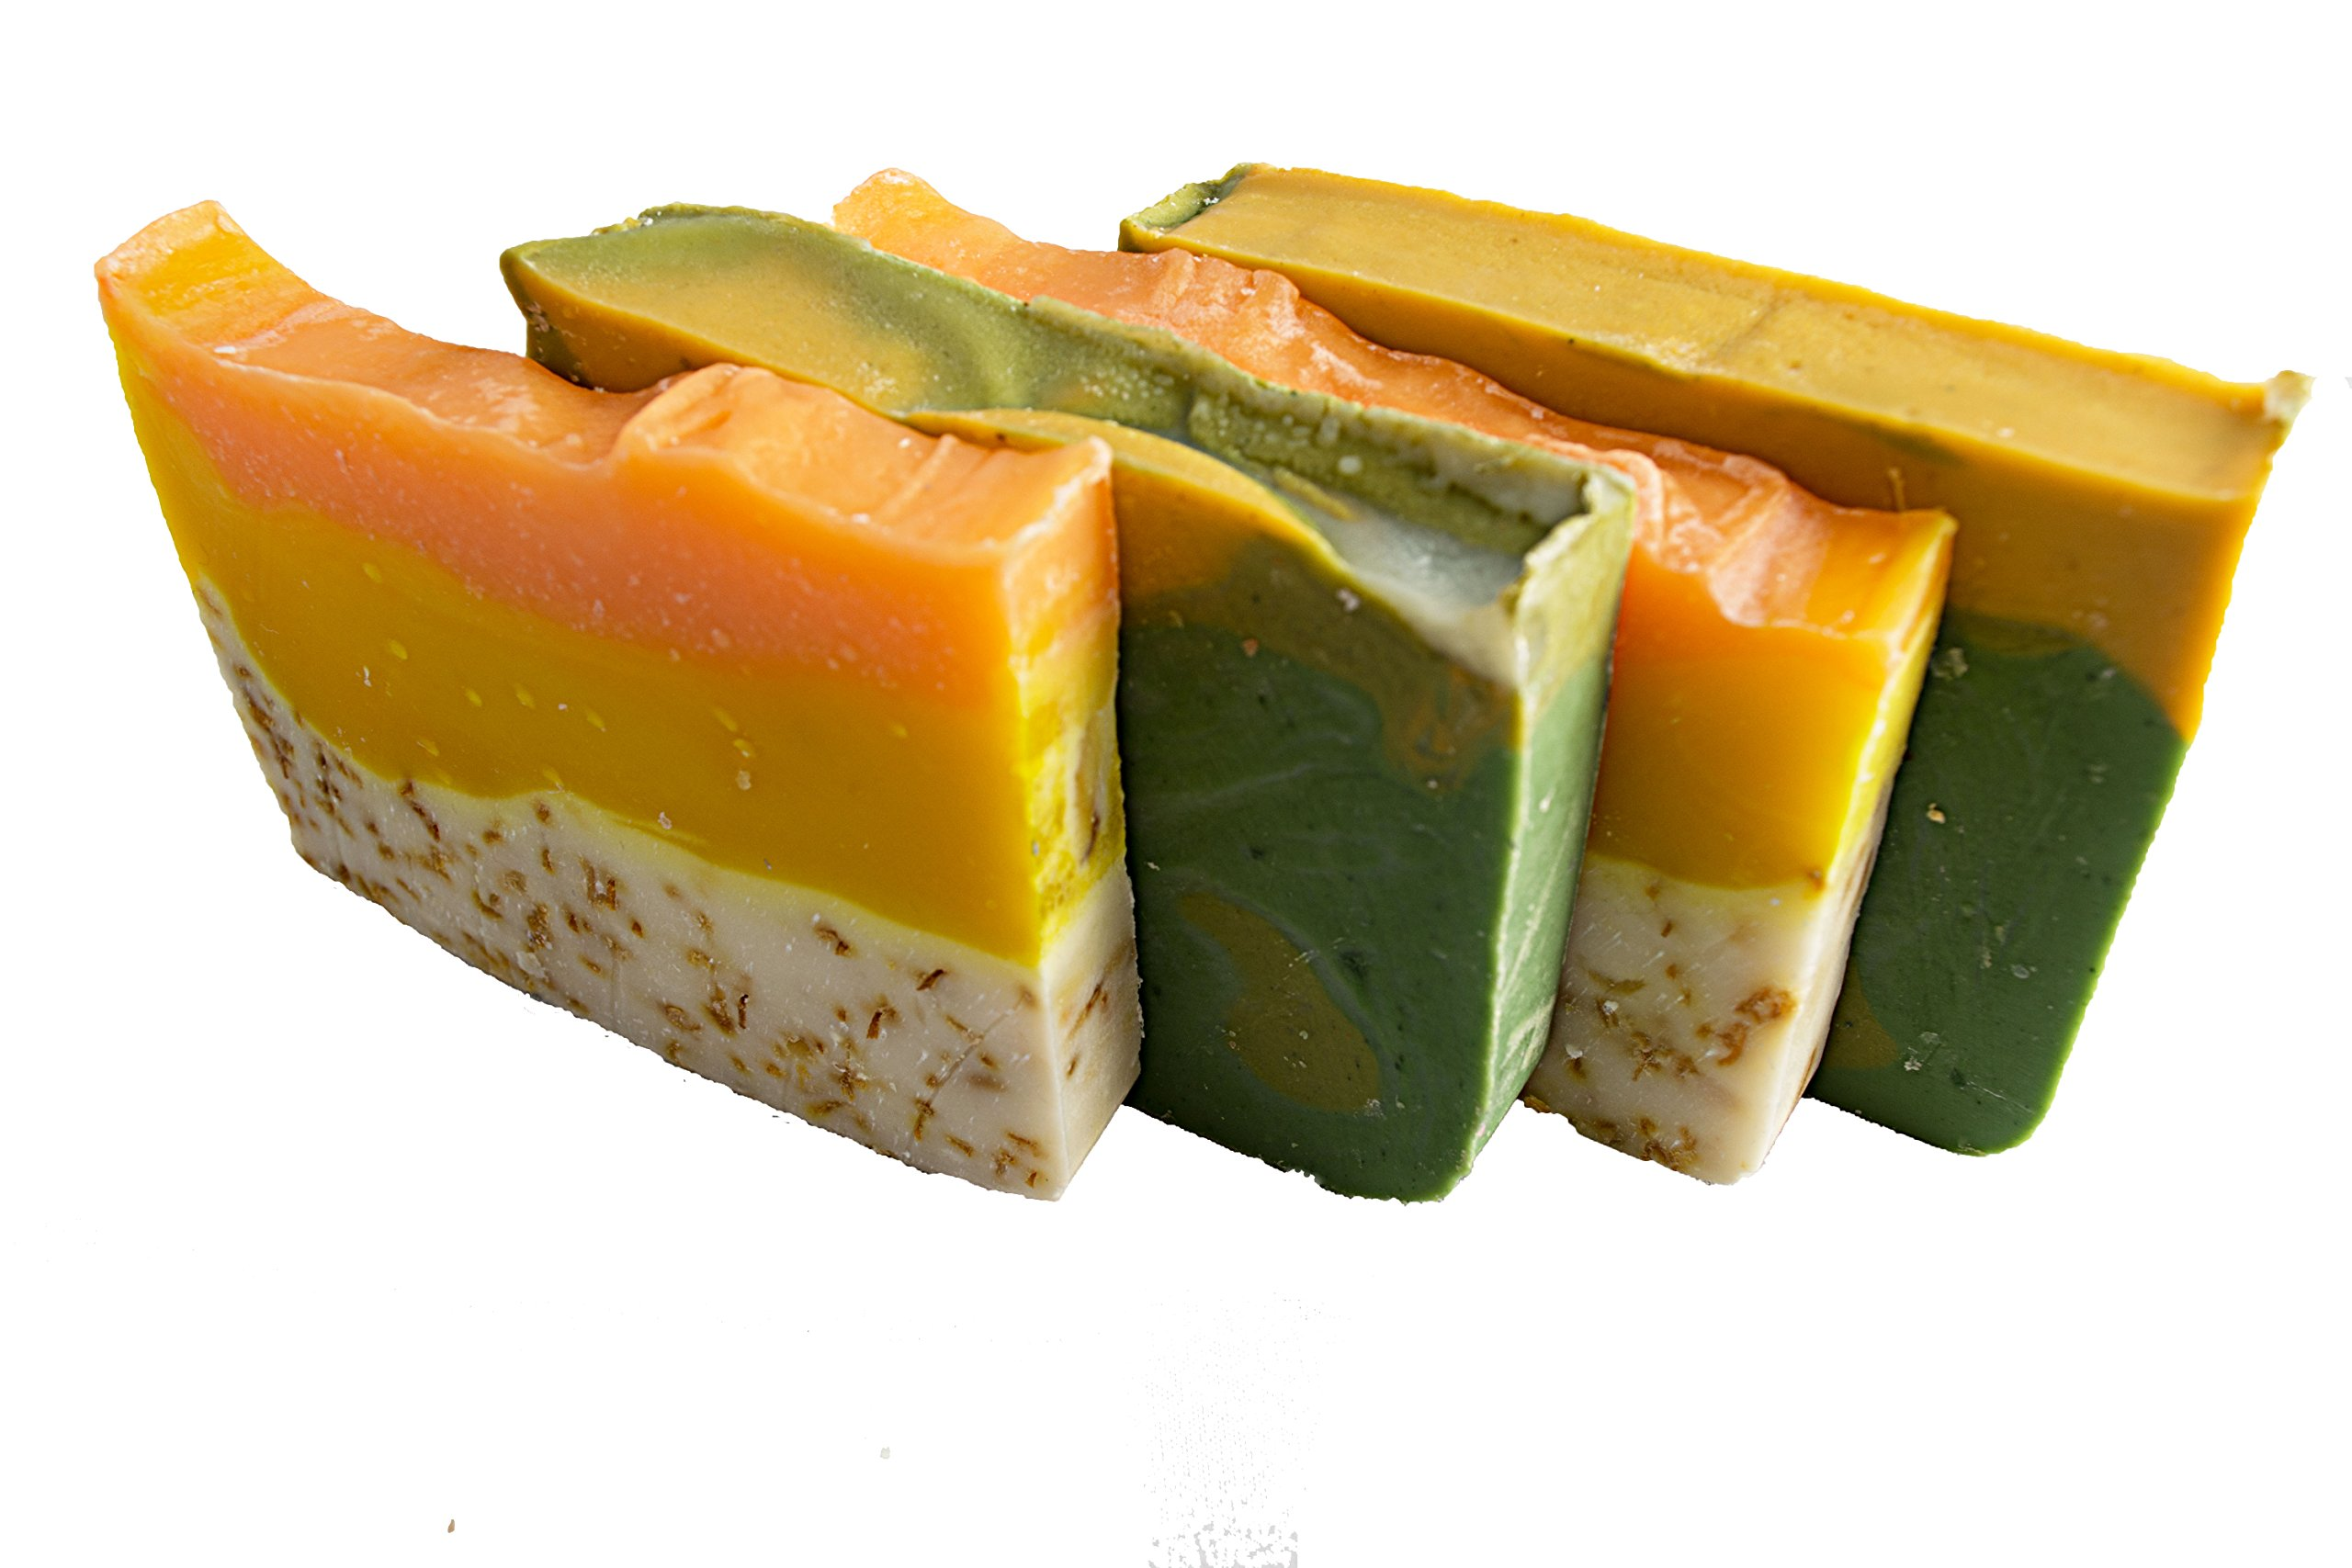 Falls River Soap Company Citrus Soap Collection - 4(Four) 2Oz Guest Bars, Sample Size Soap -Natural Handmade Soaps with Orange Essential Oil. Orange Calendula and Avocado Soaps